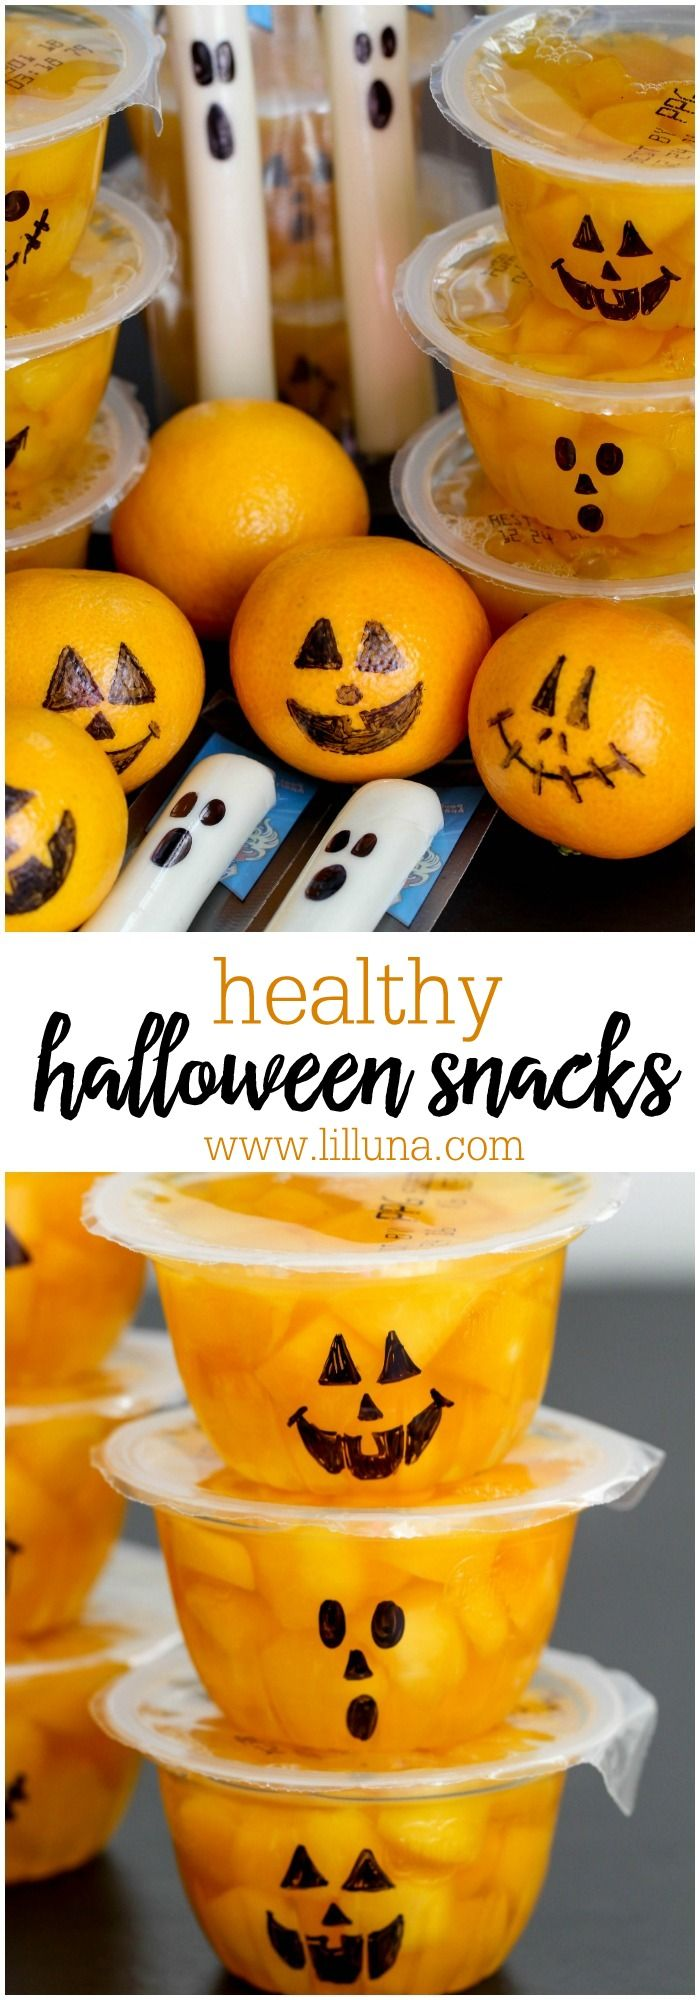 Cute and Healthy Halloween Snacks - perfect for all your fall and October parties (and so easy too!)